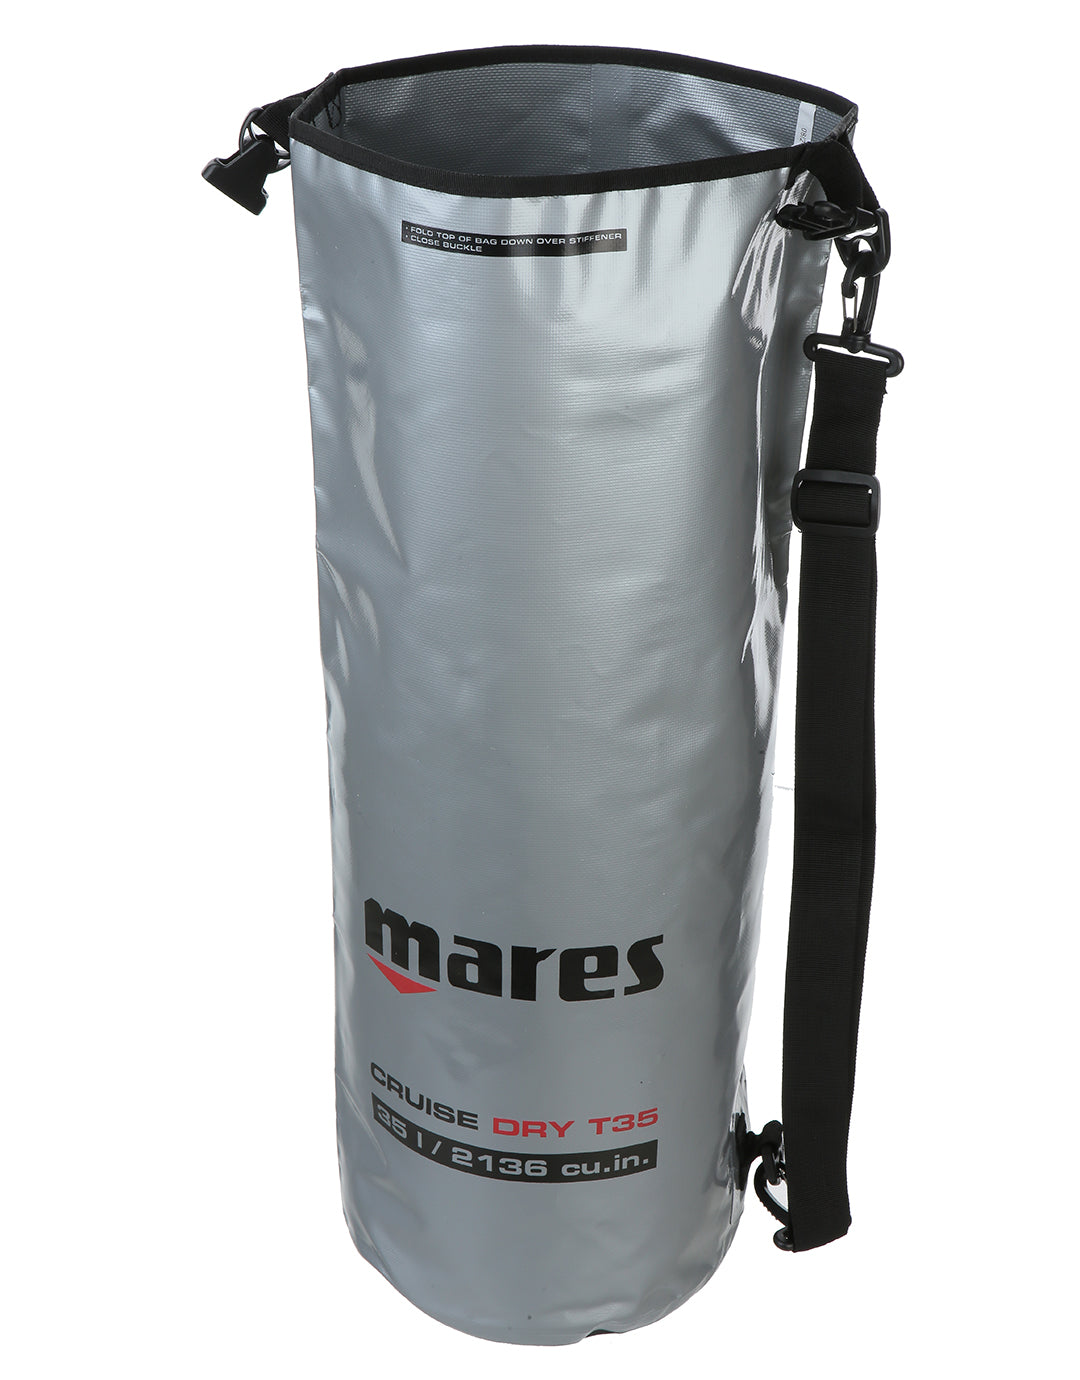 Image of Mares T35 Cruise Dry Bag